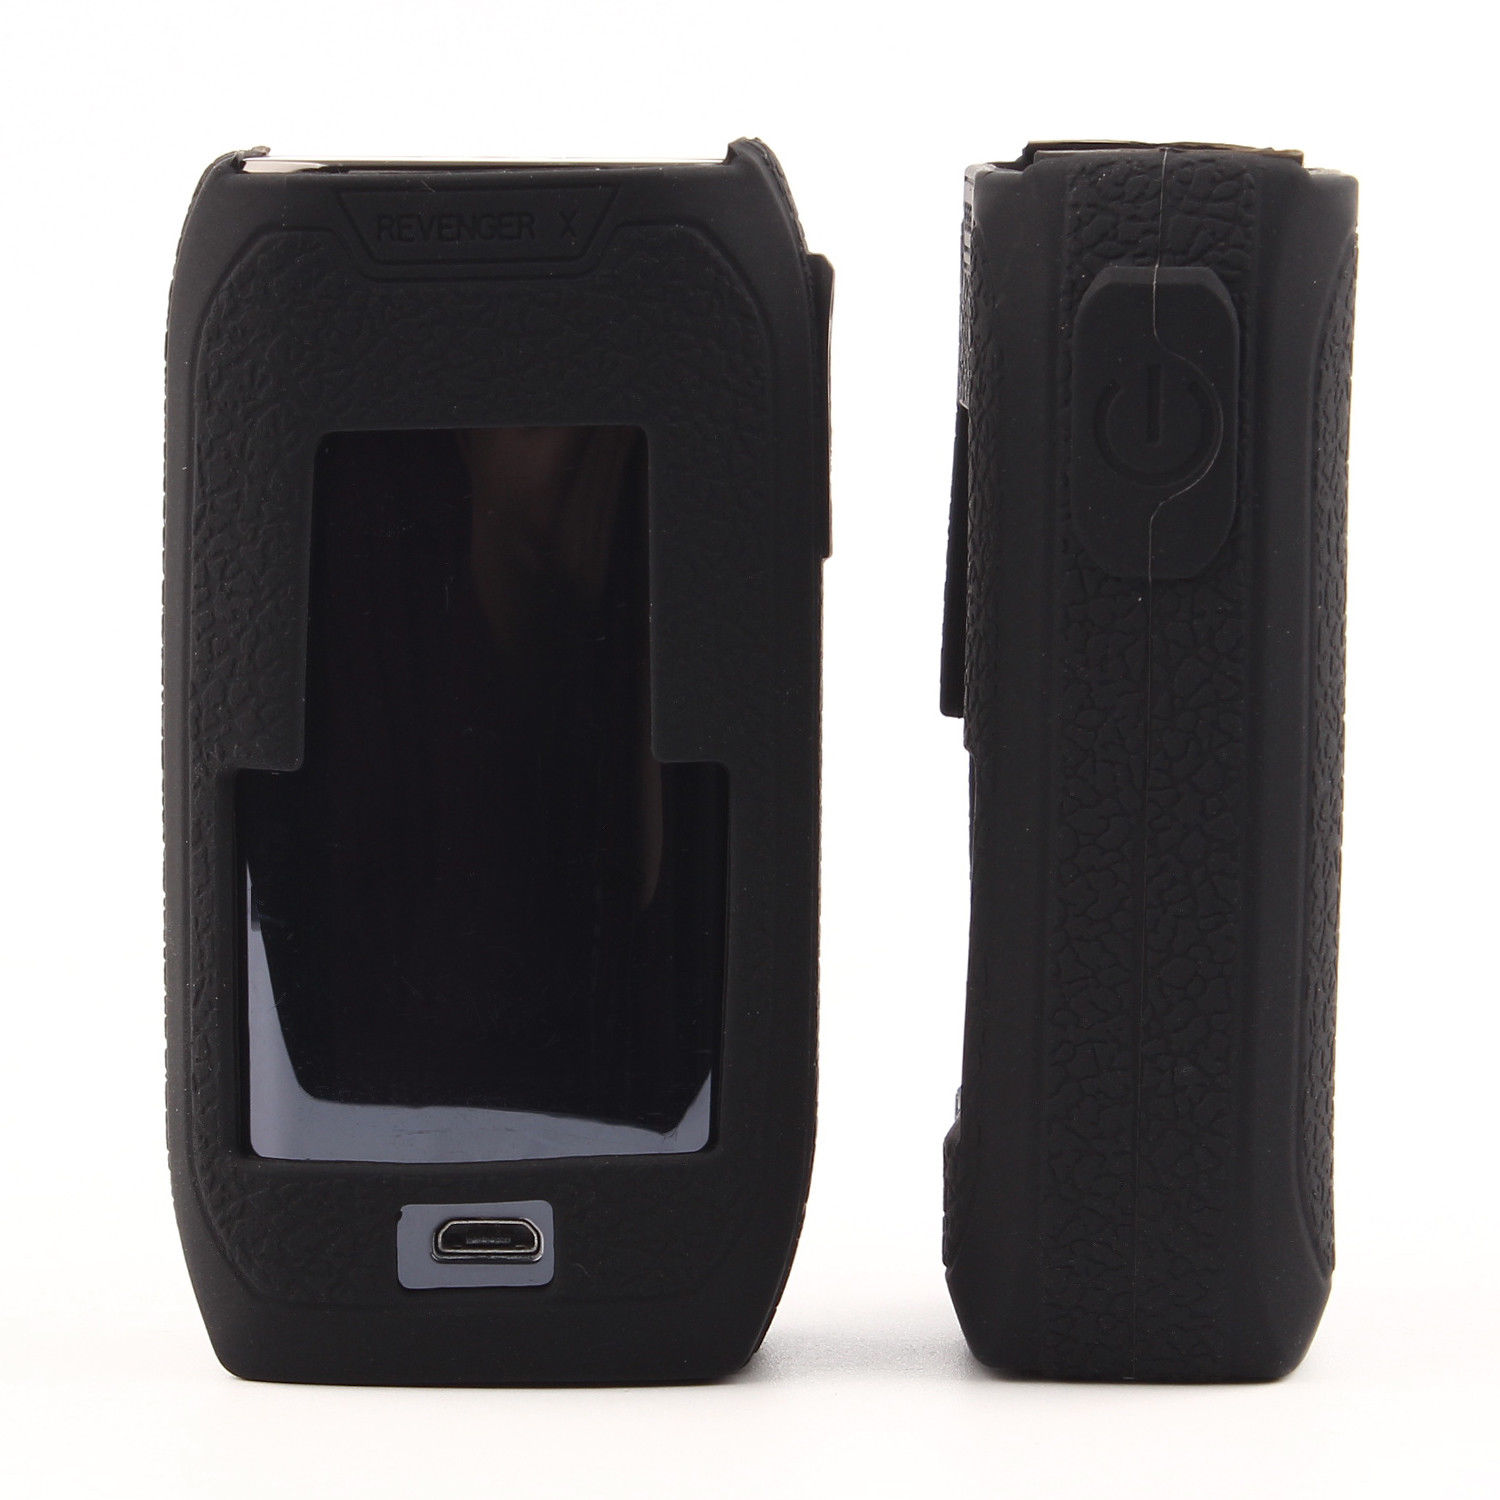 Protective Silicone Case For Vaporesso Revenger X 220w Box Mod Kit Case Cover Sticker Skin Vape Coil Battery